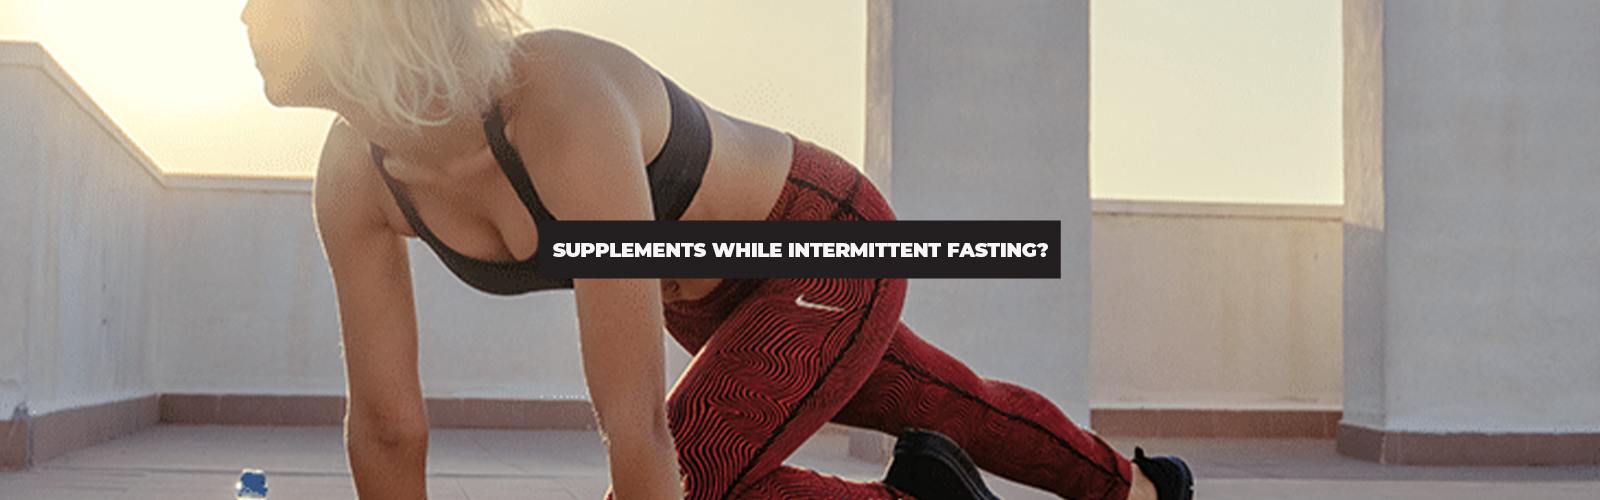 Can You Take Supplements While Intermittent Fasting?